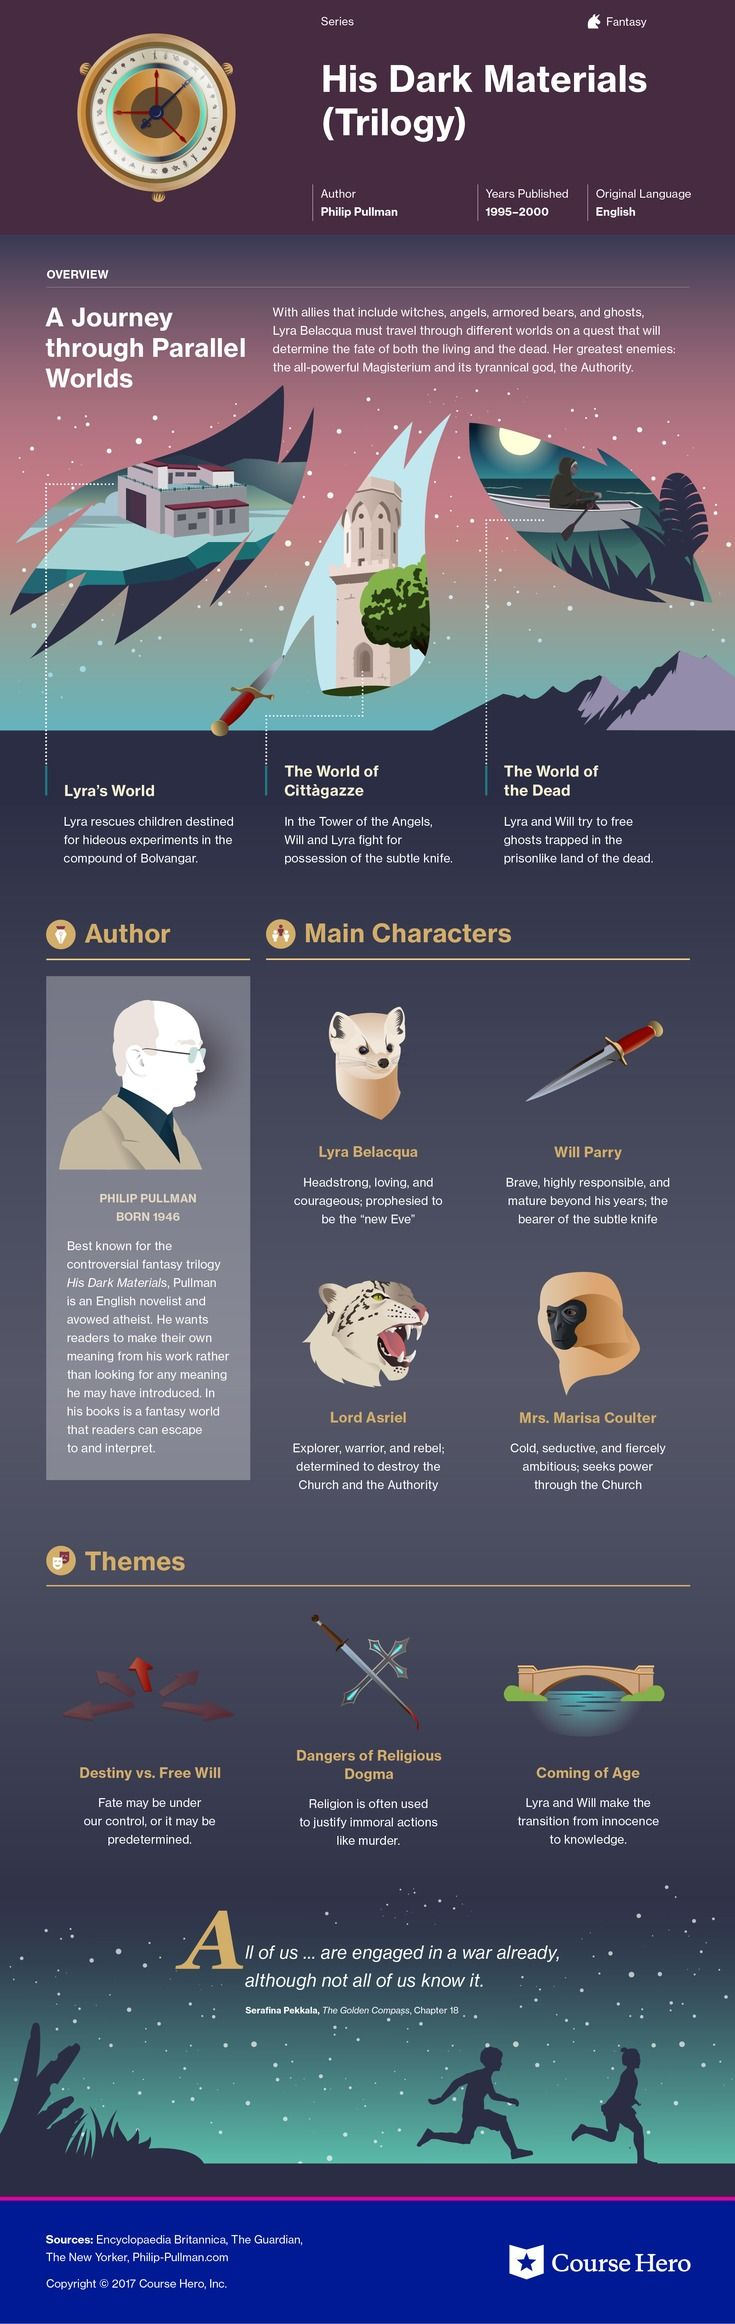 This @CourseHero infographic on His Dark Materials is both visually stunning and informative!